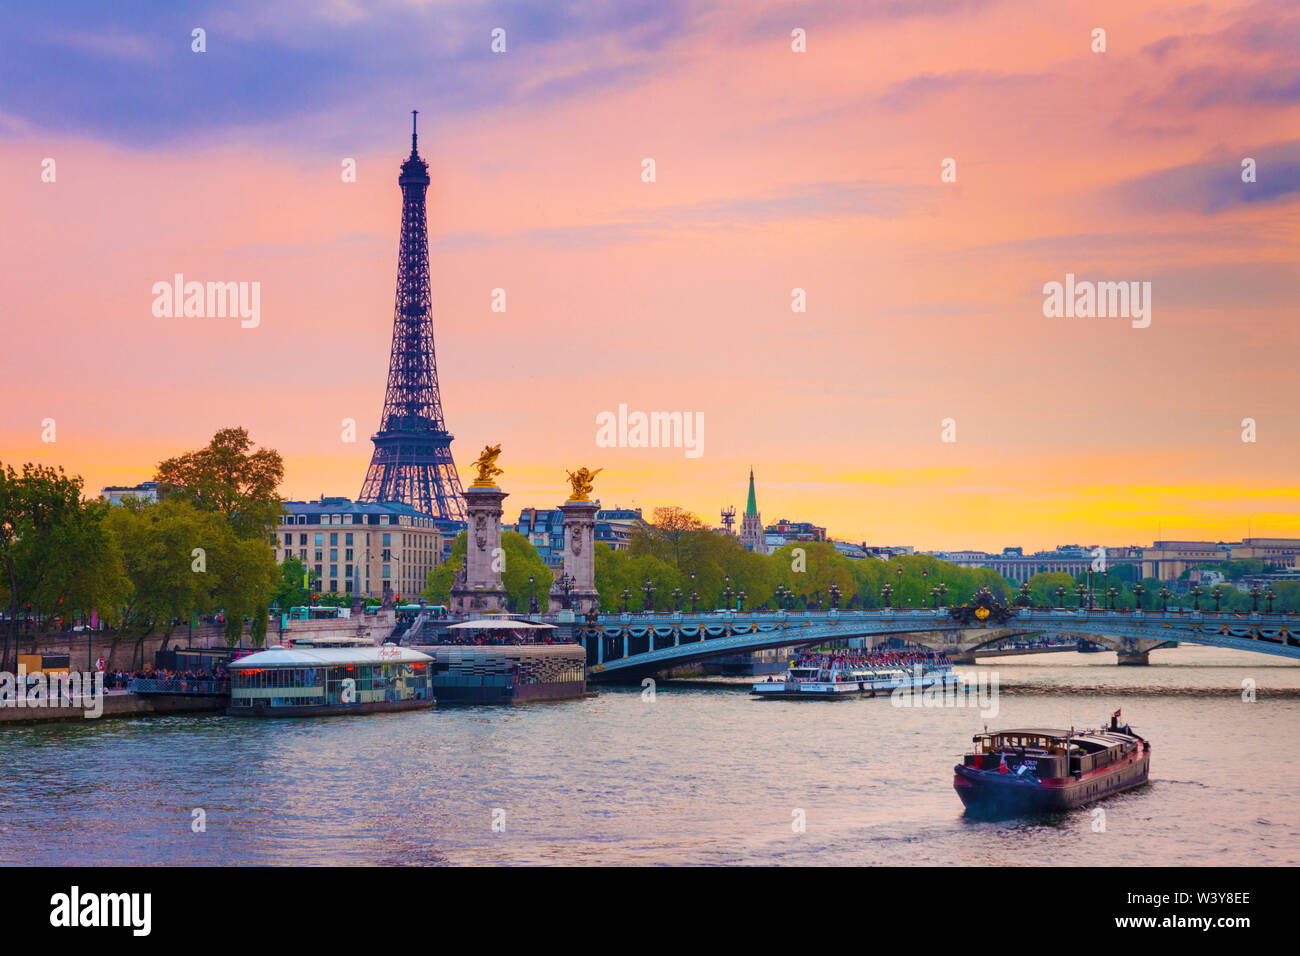 France, Paris, Eiffel Tower and River Seine at dusk - Stock Image